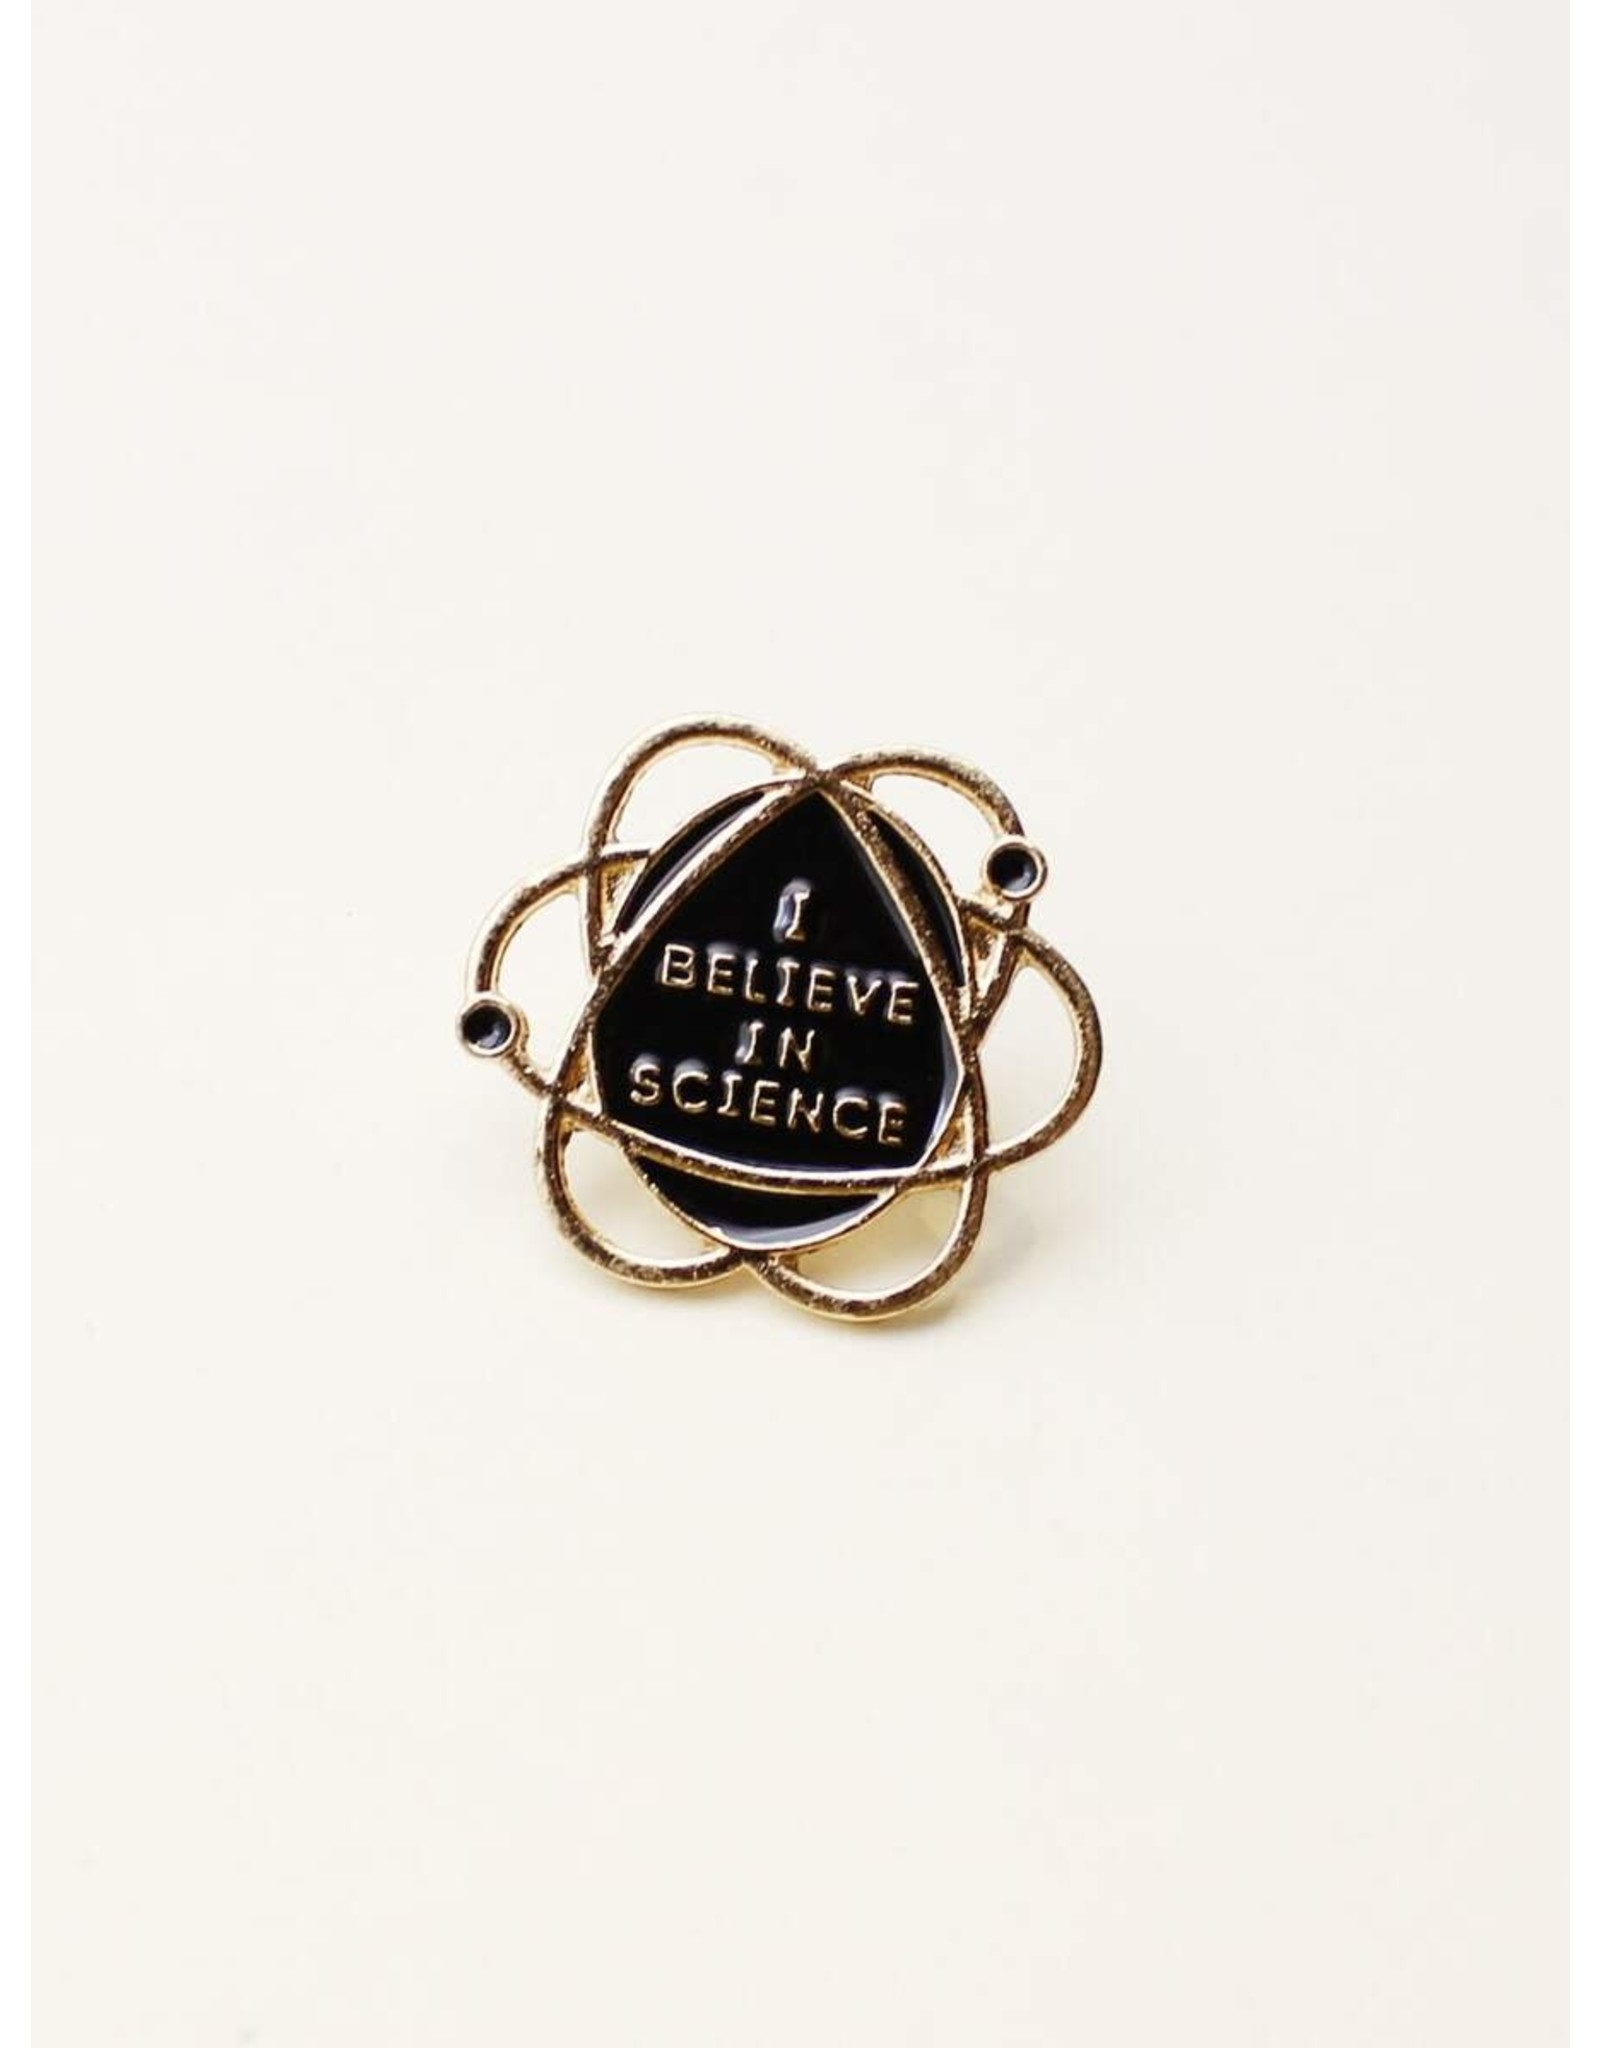 Shein Pin - I Believe In Science